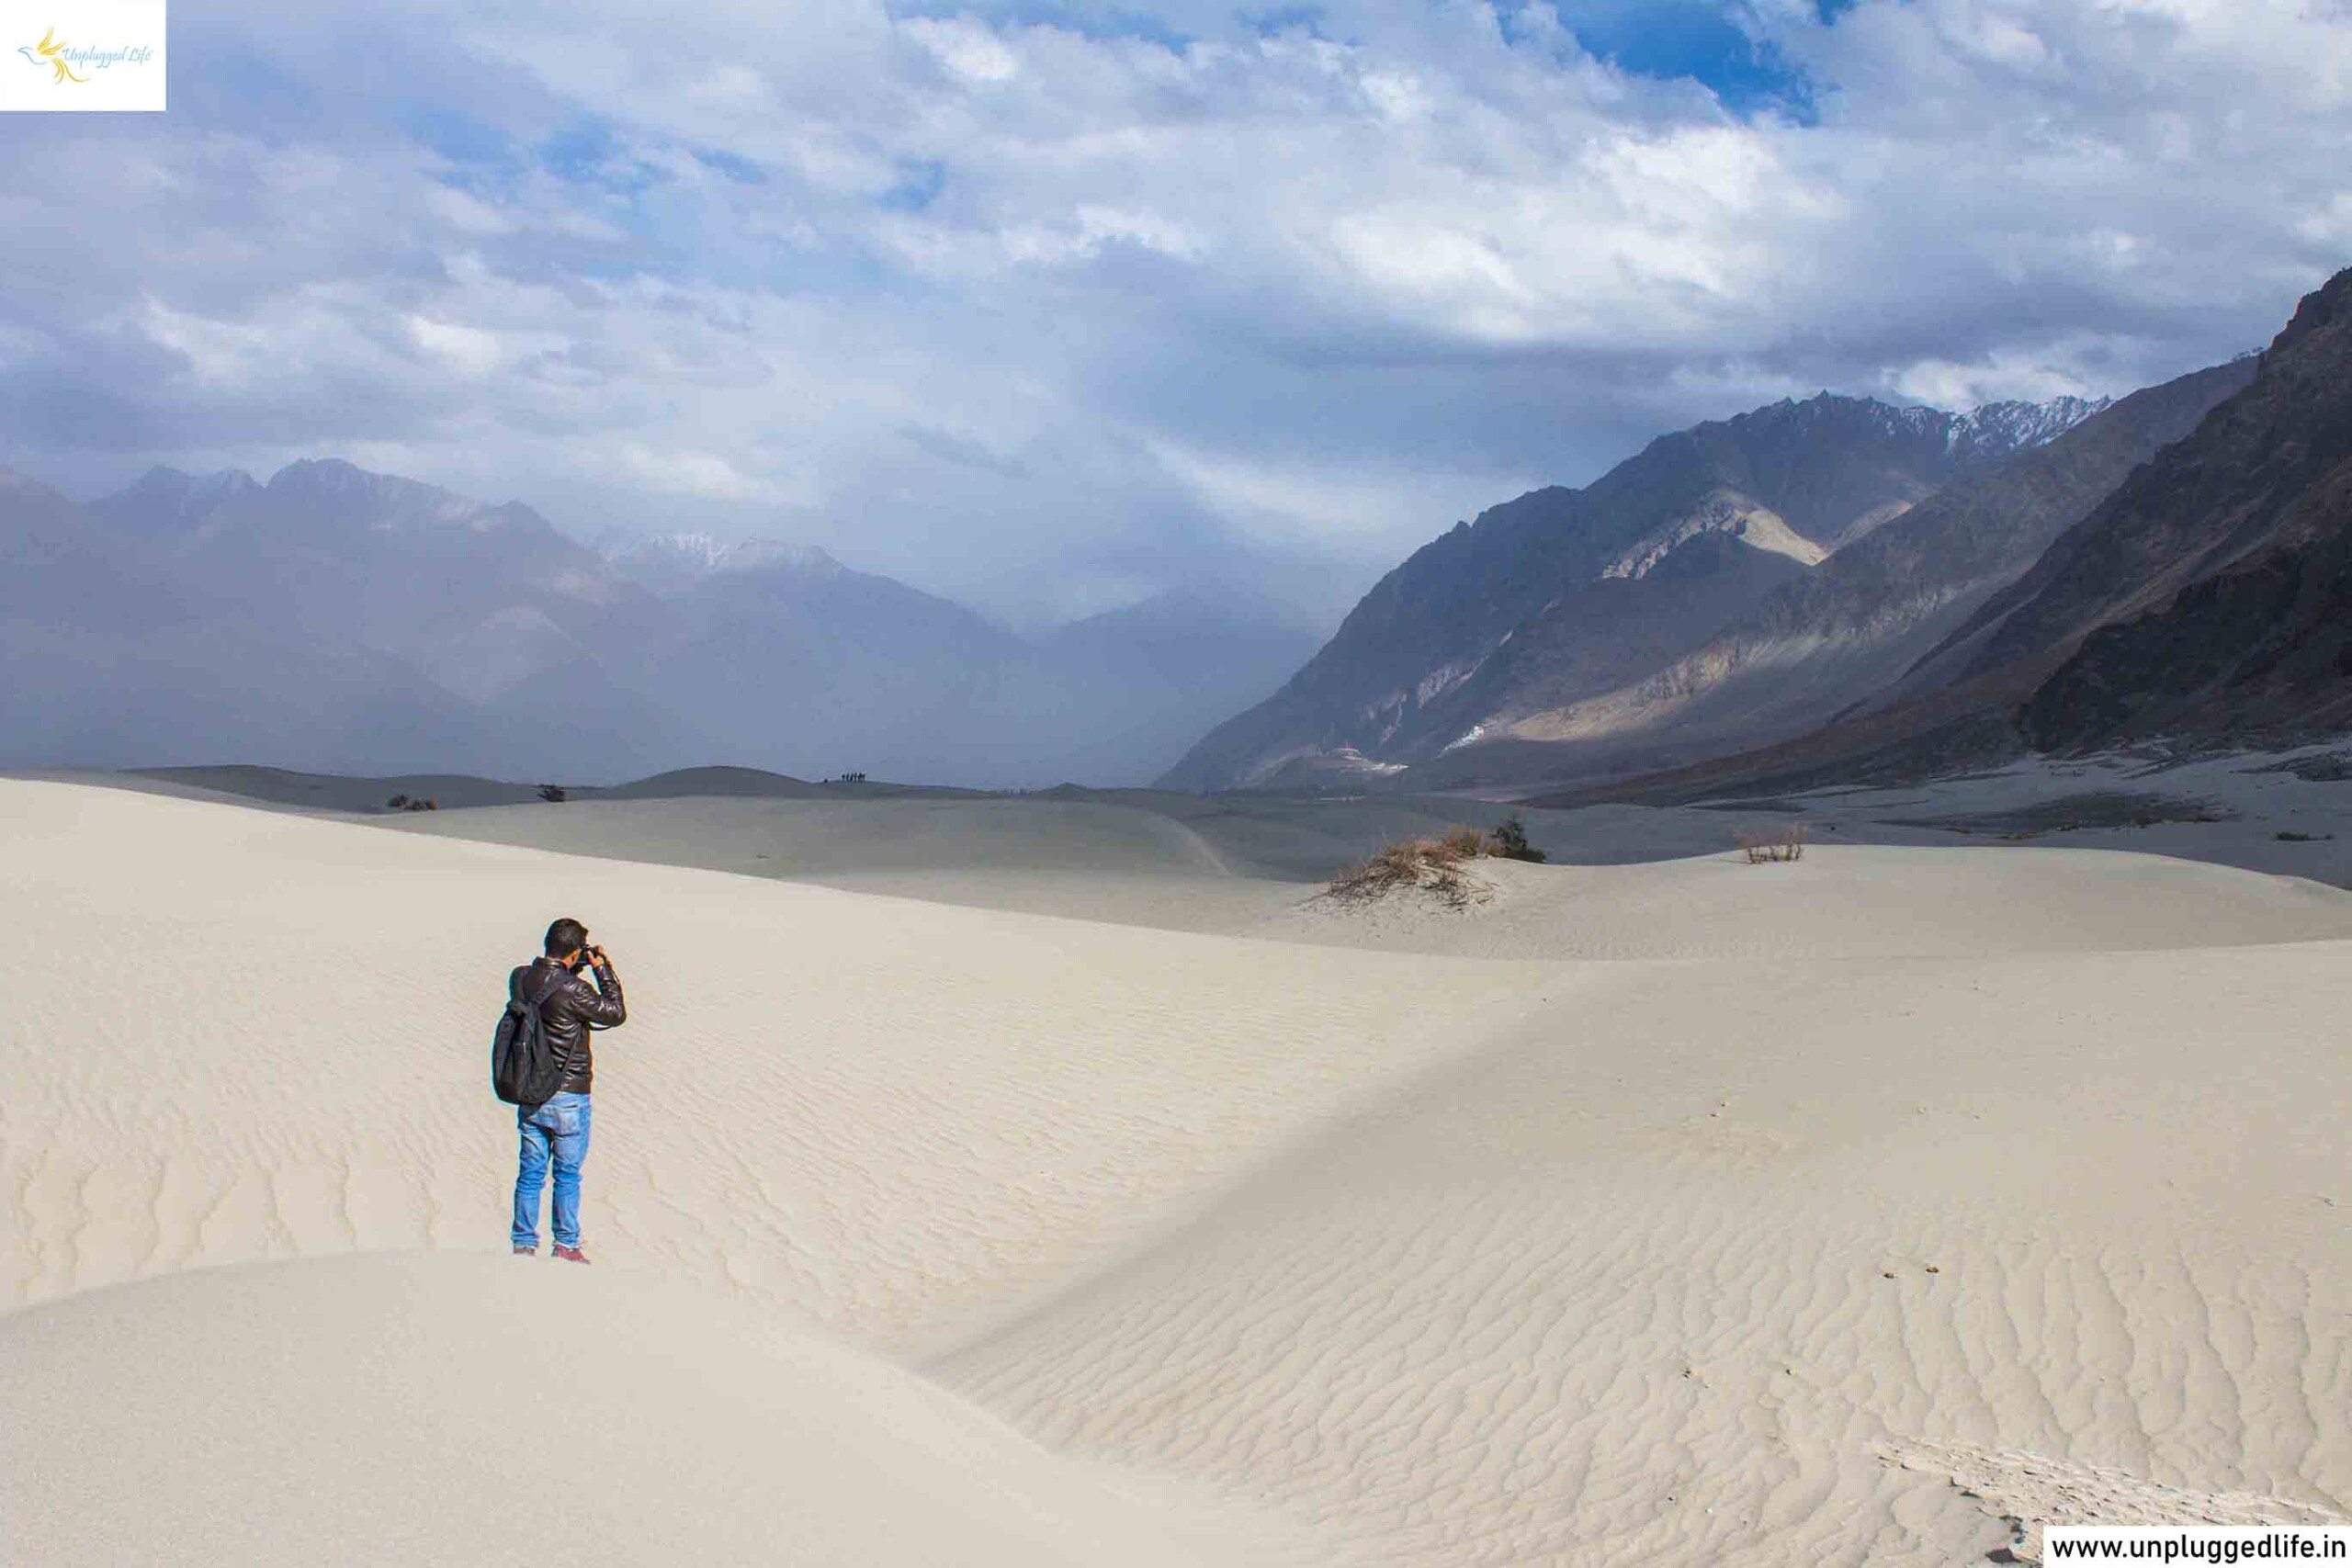 Hunder Sand Dunes, Sand Dunes in Hunder Nubra Valley, Nubra Valley Sand Dunes, Sand Dunes in Nubra Valley, Nubra Valley Desert, Desert in Hunder Nubra Valley, Ladakh, Unplugged Life, Khardung La, Khardung La Top, Leh to Nubra Valley, Nubra Valley to Leh, Landscape in Ladakh, Landscape, Mountains, Leh to Hunder, Diskit to Leh, Leh to Diskit, Ladakh Sand Dunes